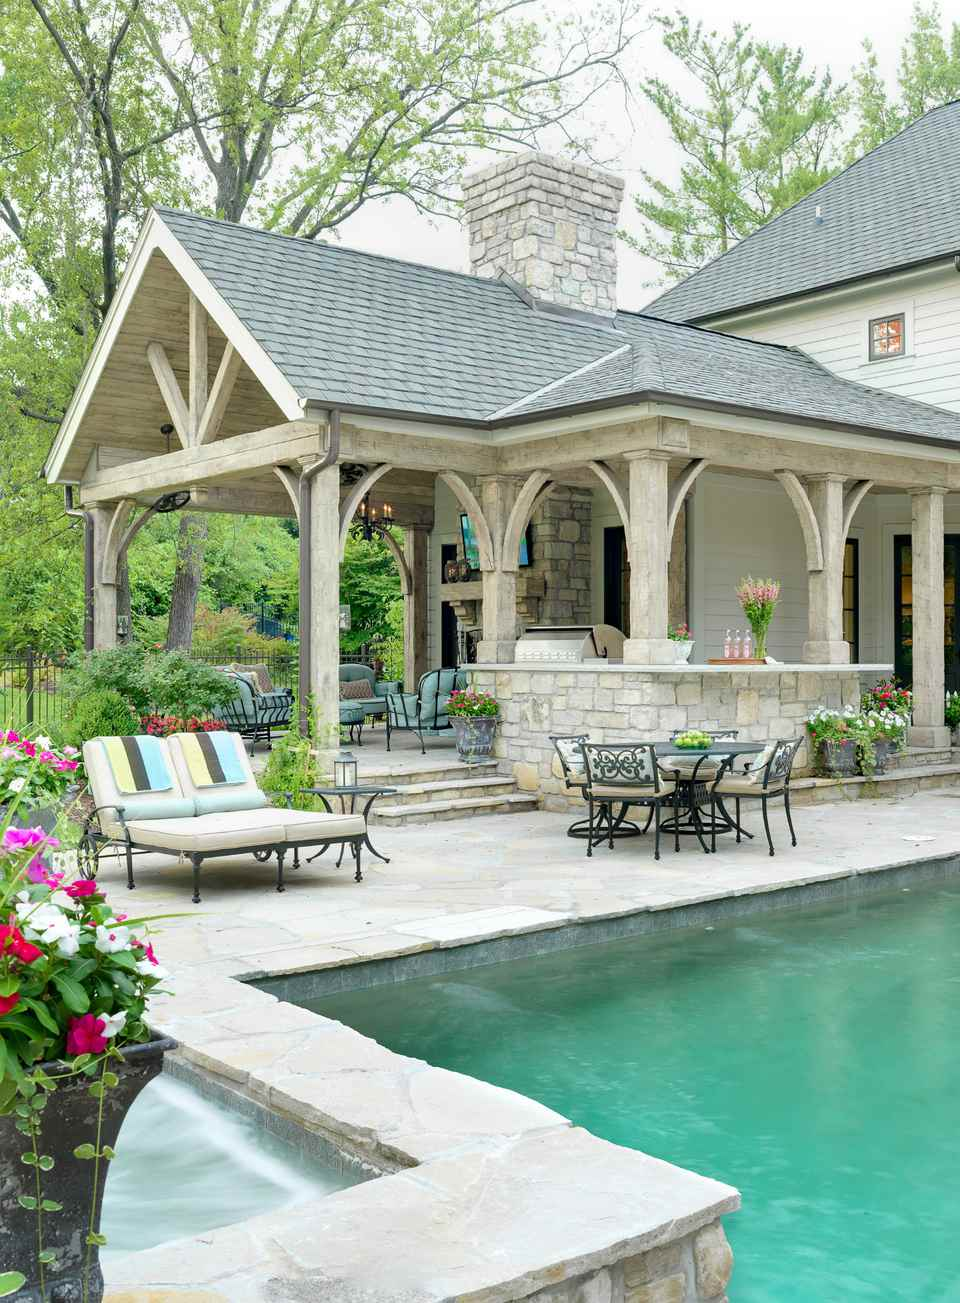 50 Stylish Covered Patio Ideas on Covered Patio Design Ideas id=42184